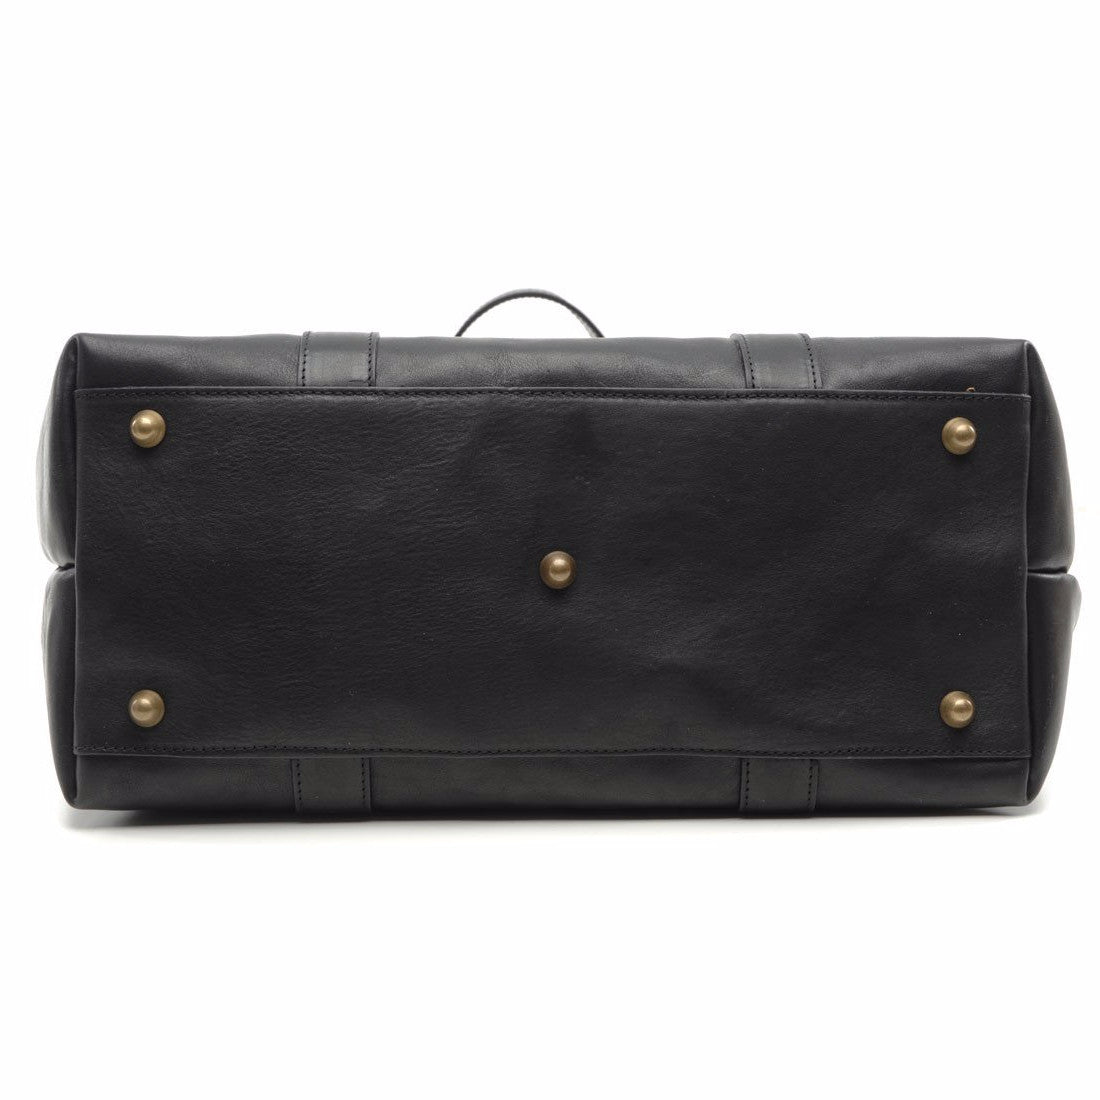 Samuji Tori Bag Black